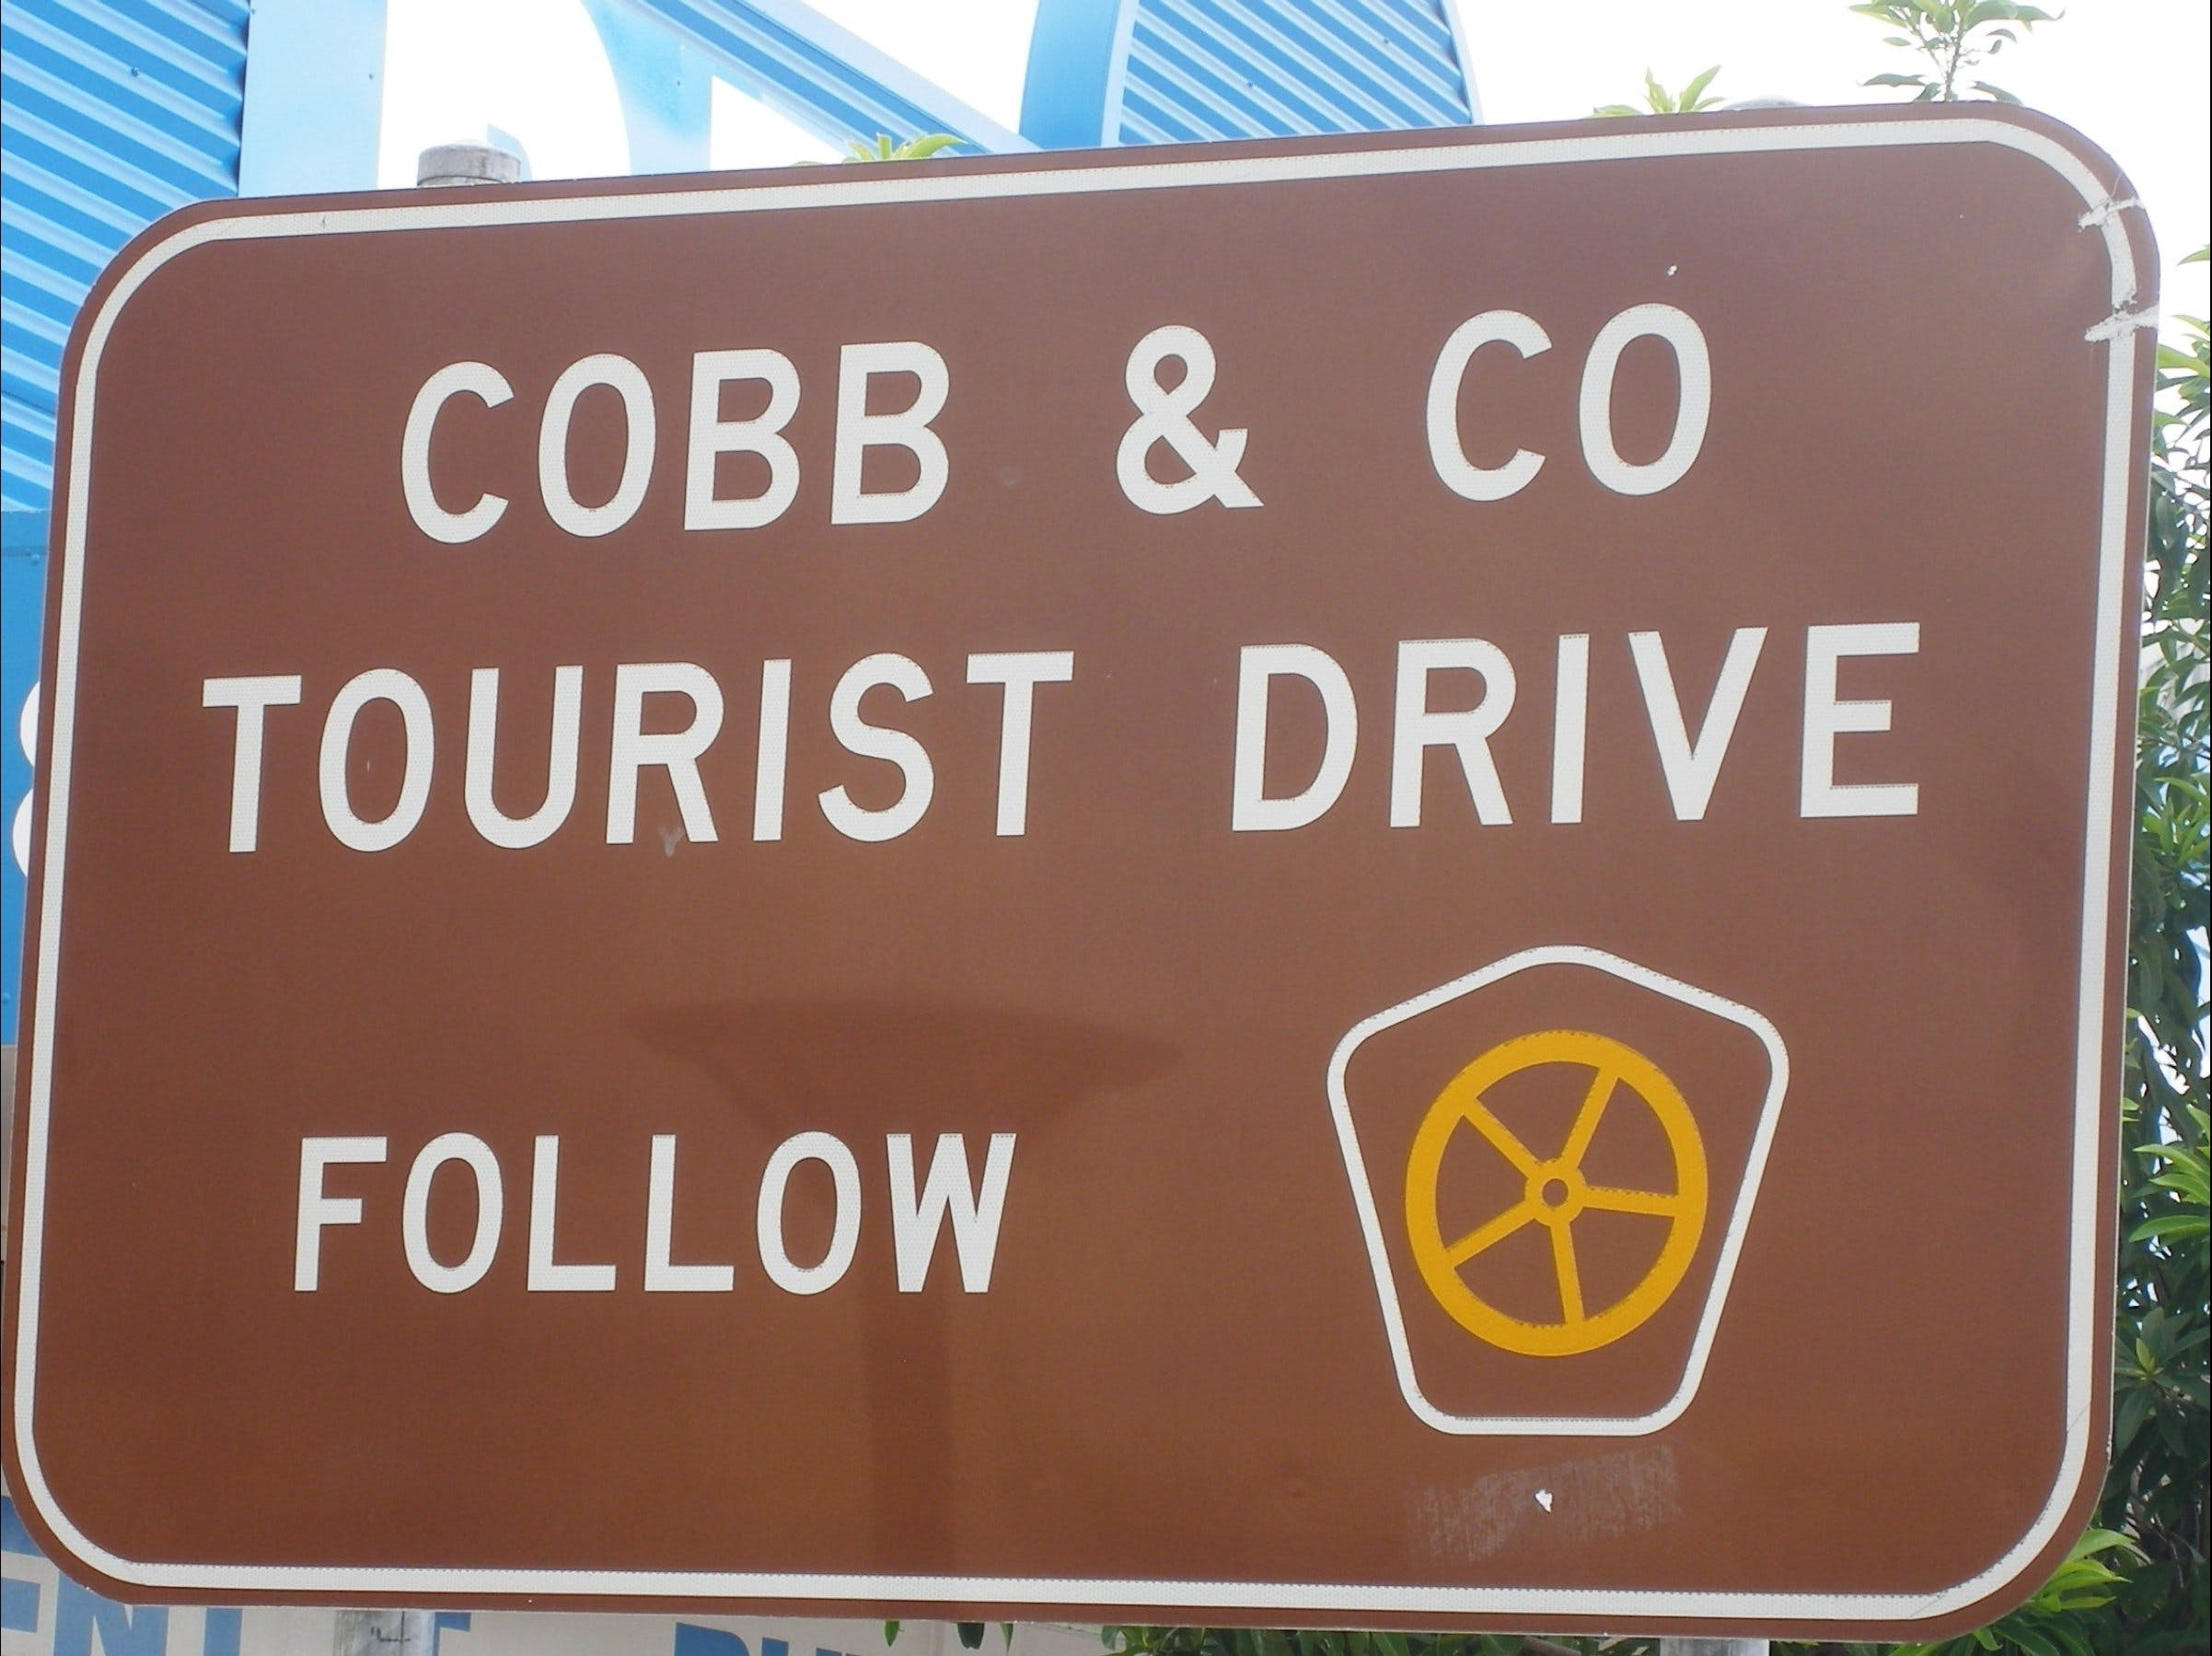 Cobb & Co Tourist Drive Logo and Images